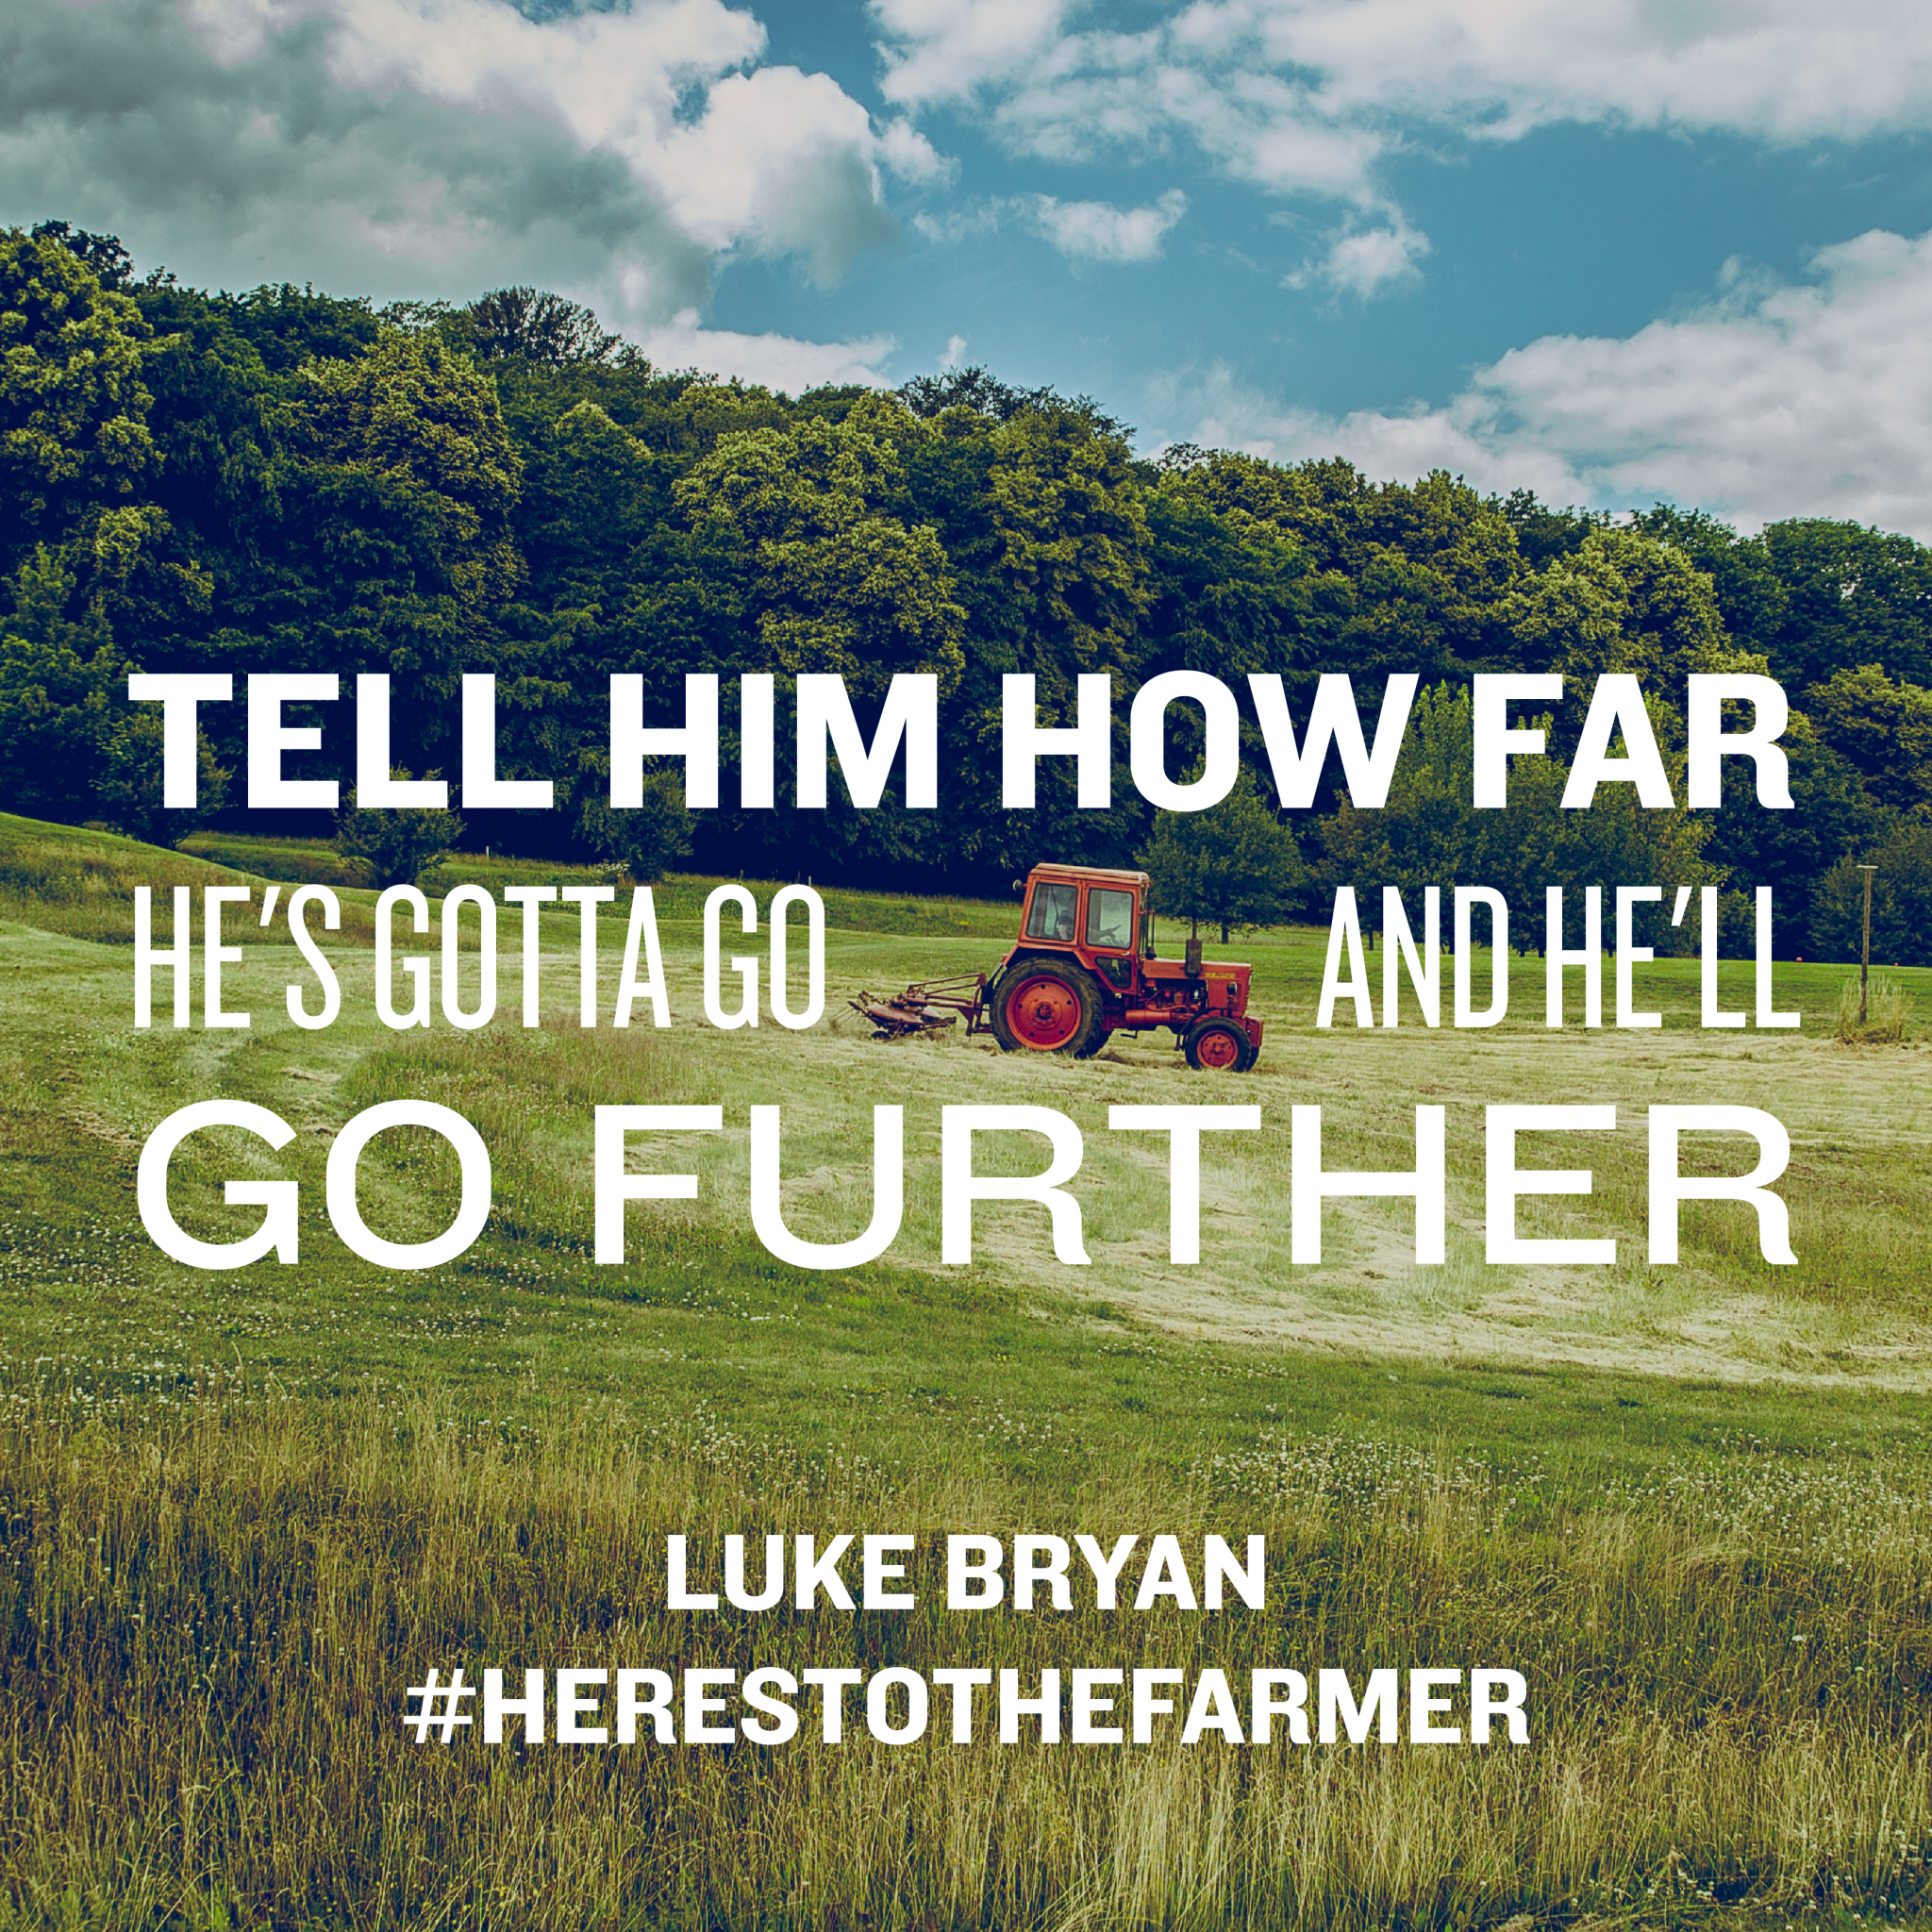 luke-bryan-heres-to-the-farmer